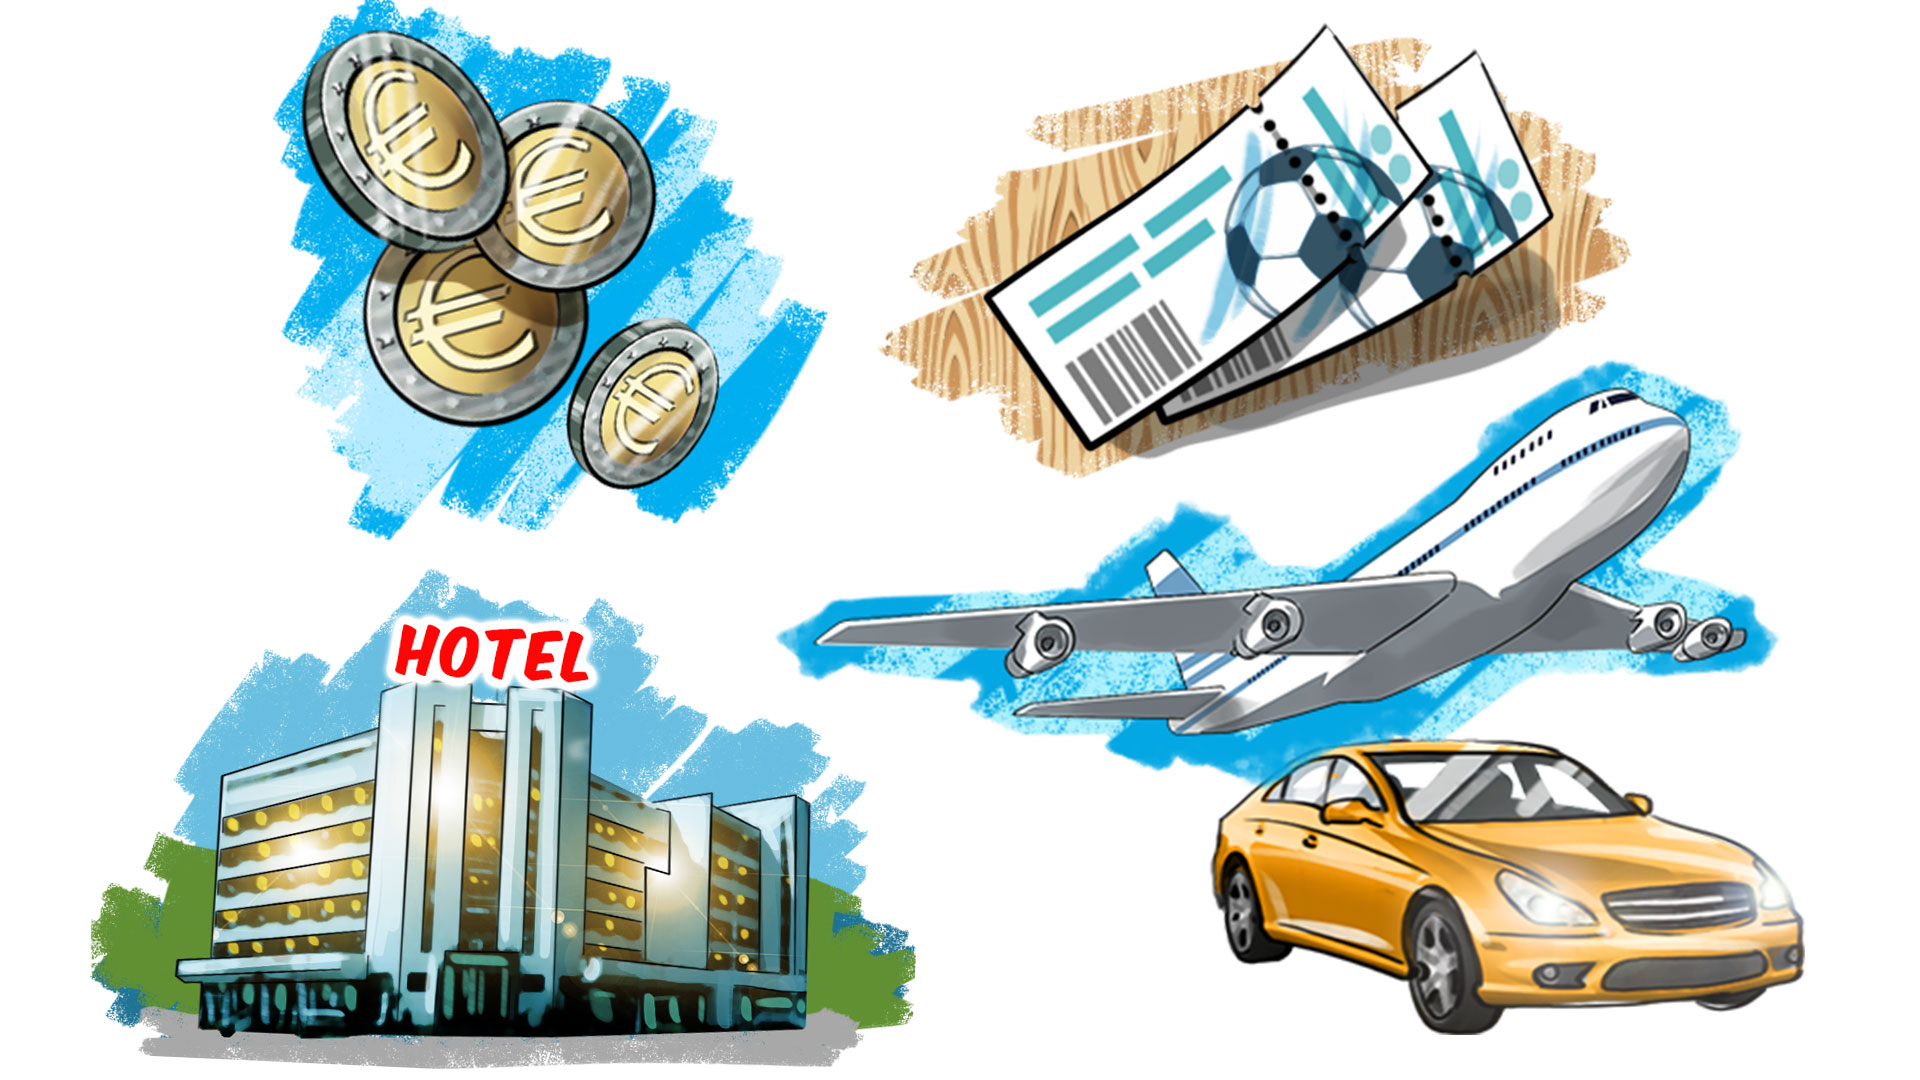 Money tickets hotel car illustrations, 'Famous matches - illustrations for web game